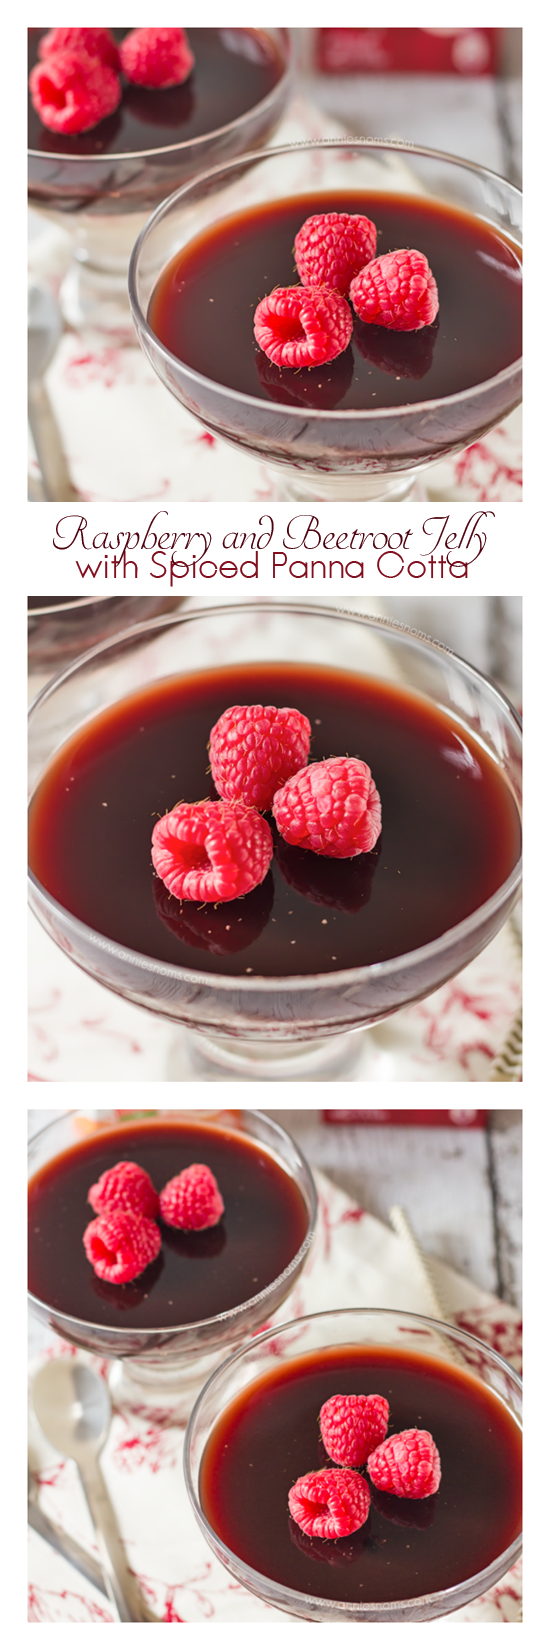 A layer of lightly spiced, creamy Panna Cotta topped with a homemade Raspberry and Beetroot Jelly makes this a simple, but festive dessert. Just perfect for Christmas!